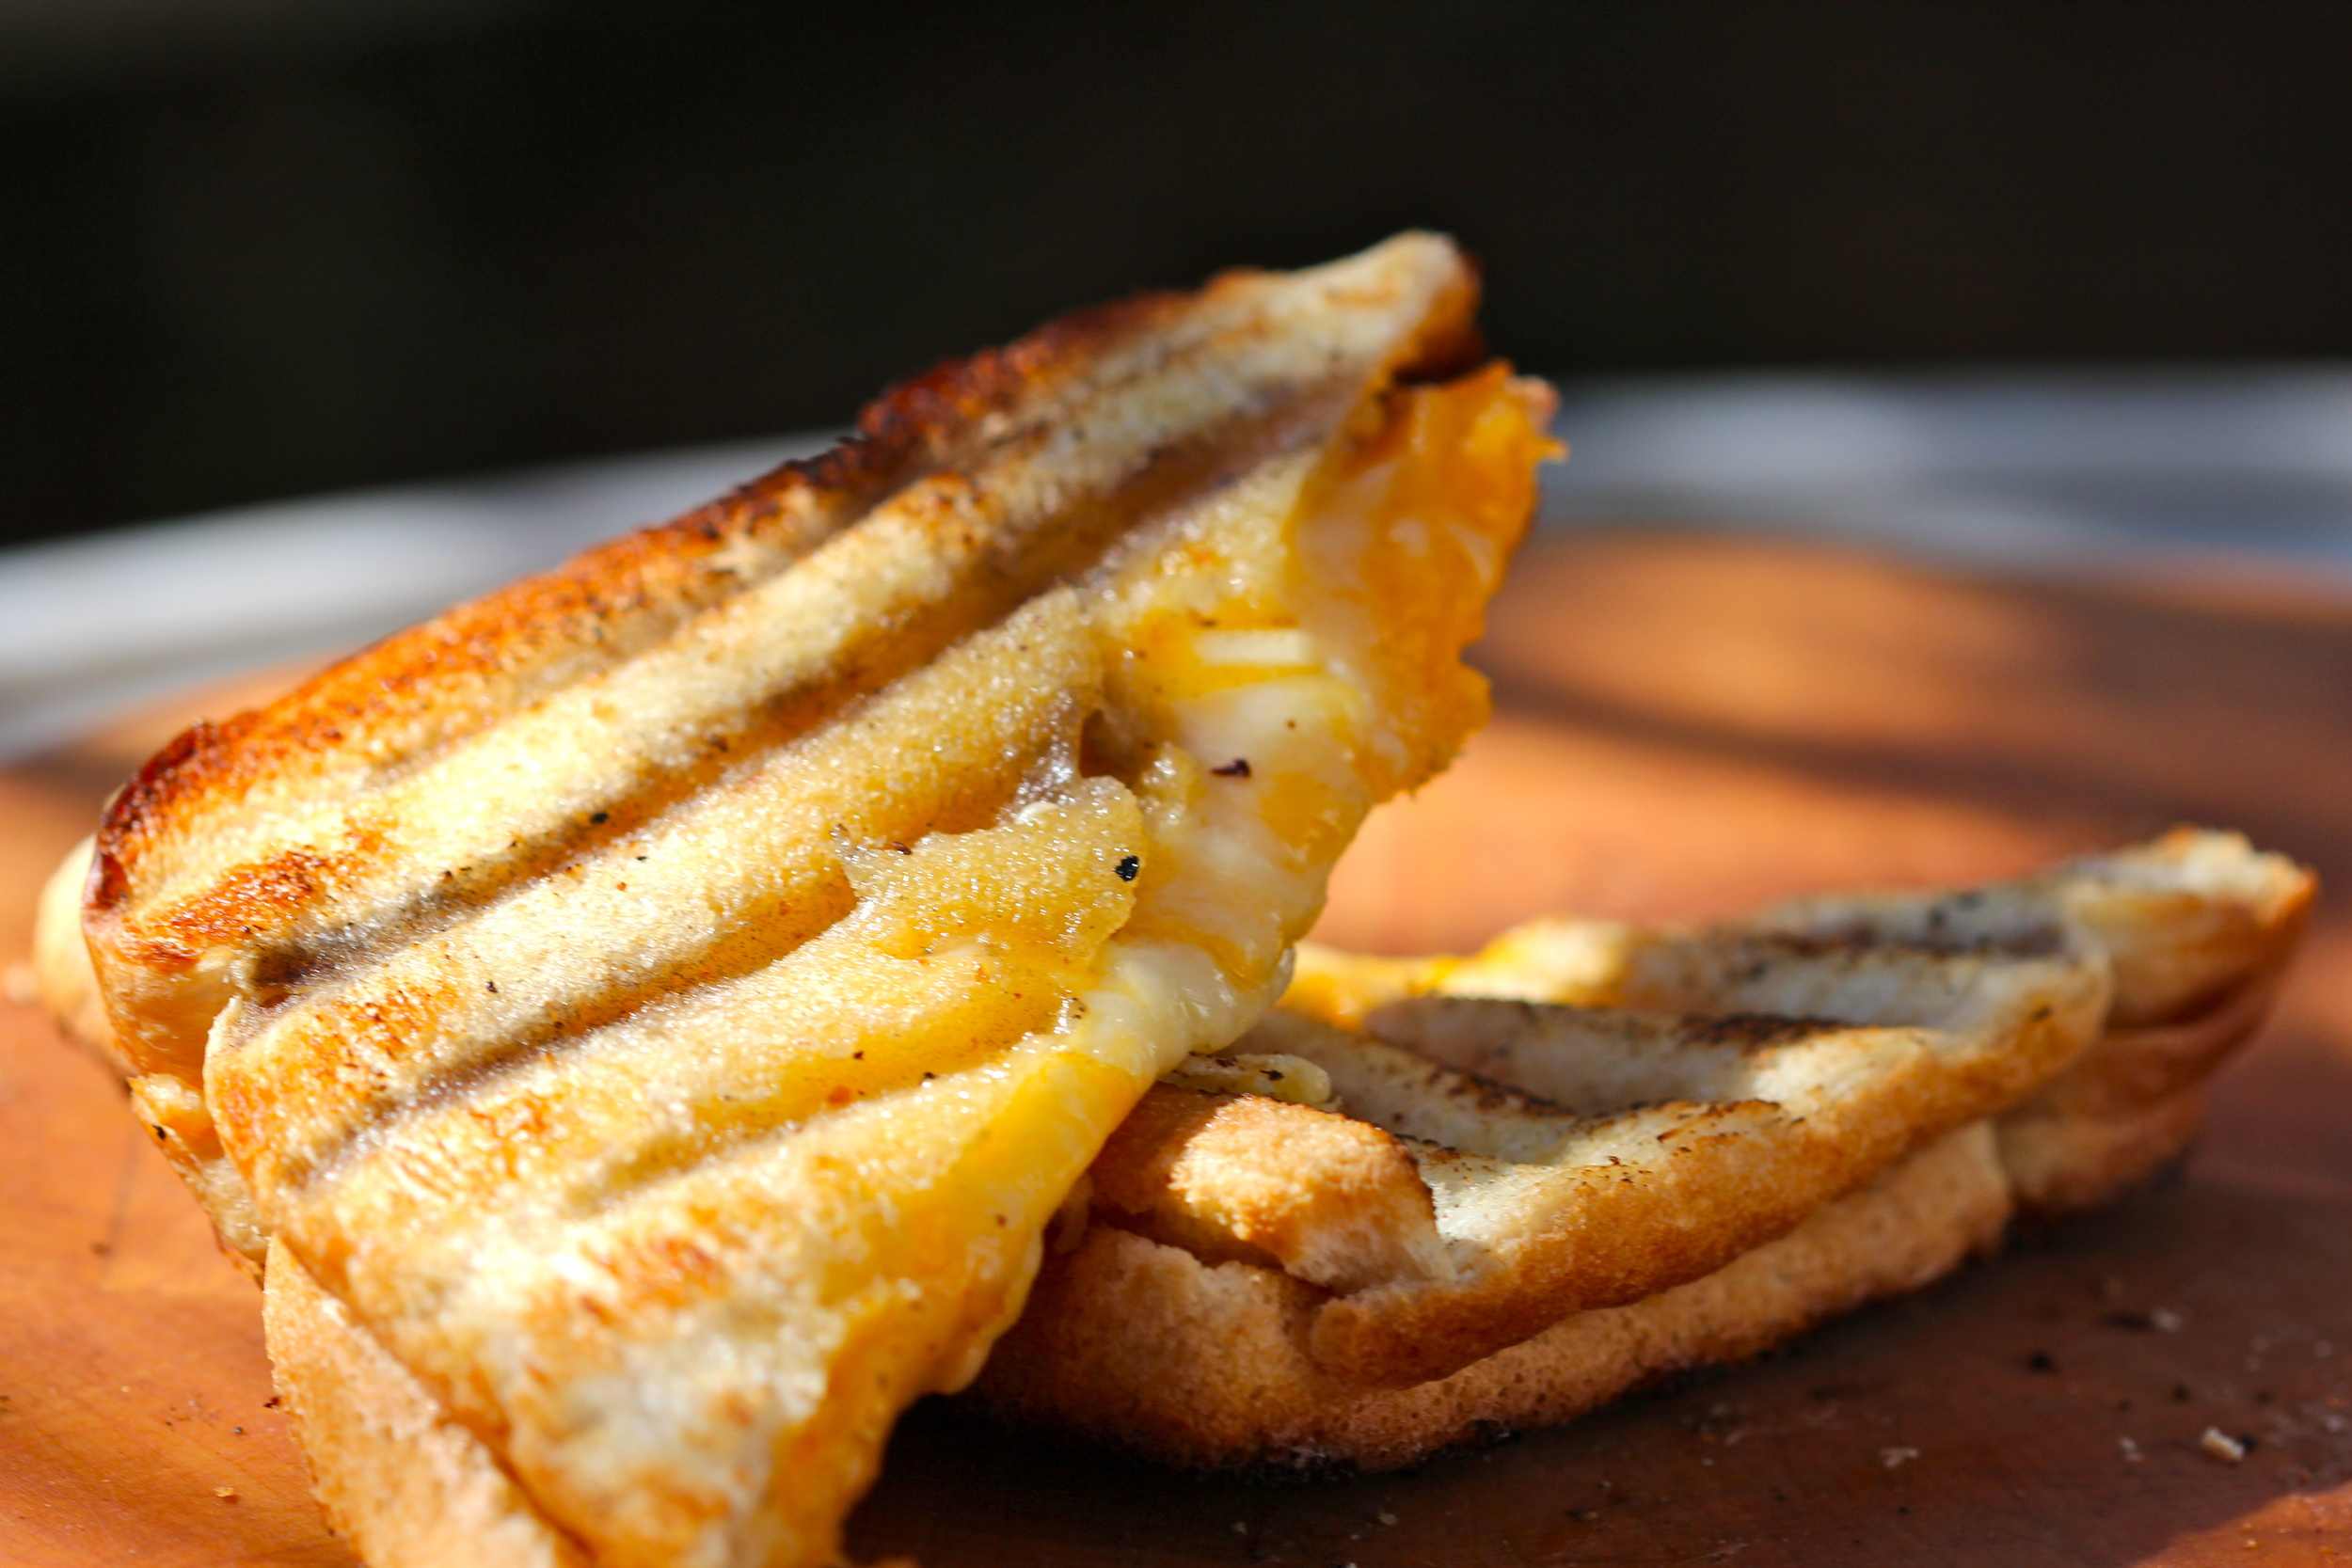 Grilled Double Cheddar Sandwich